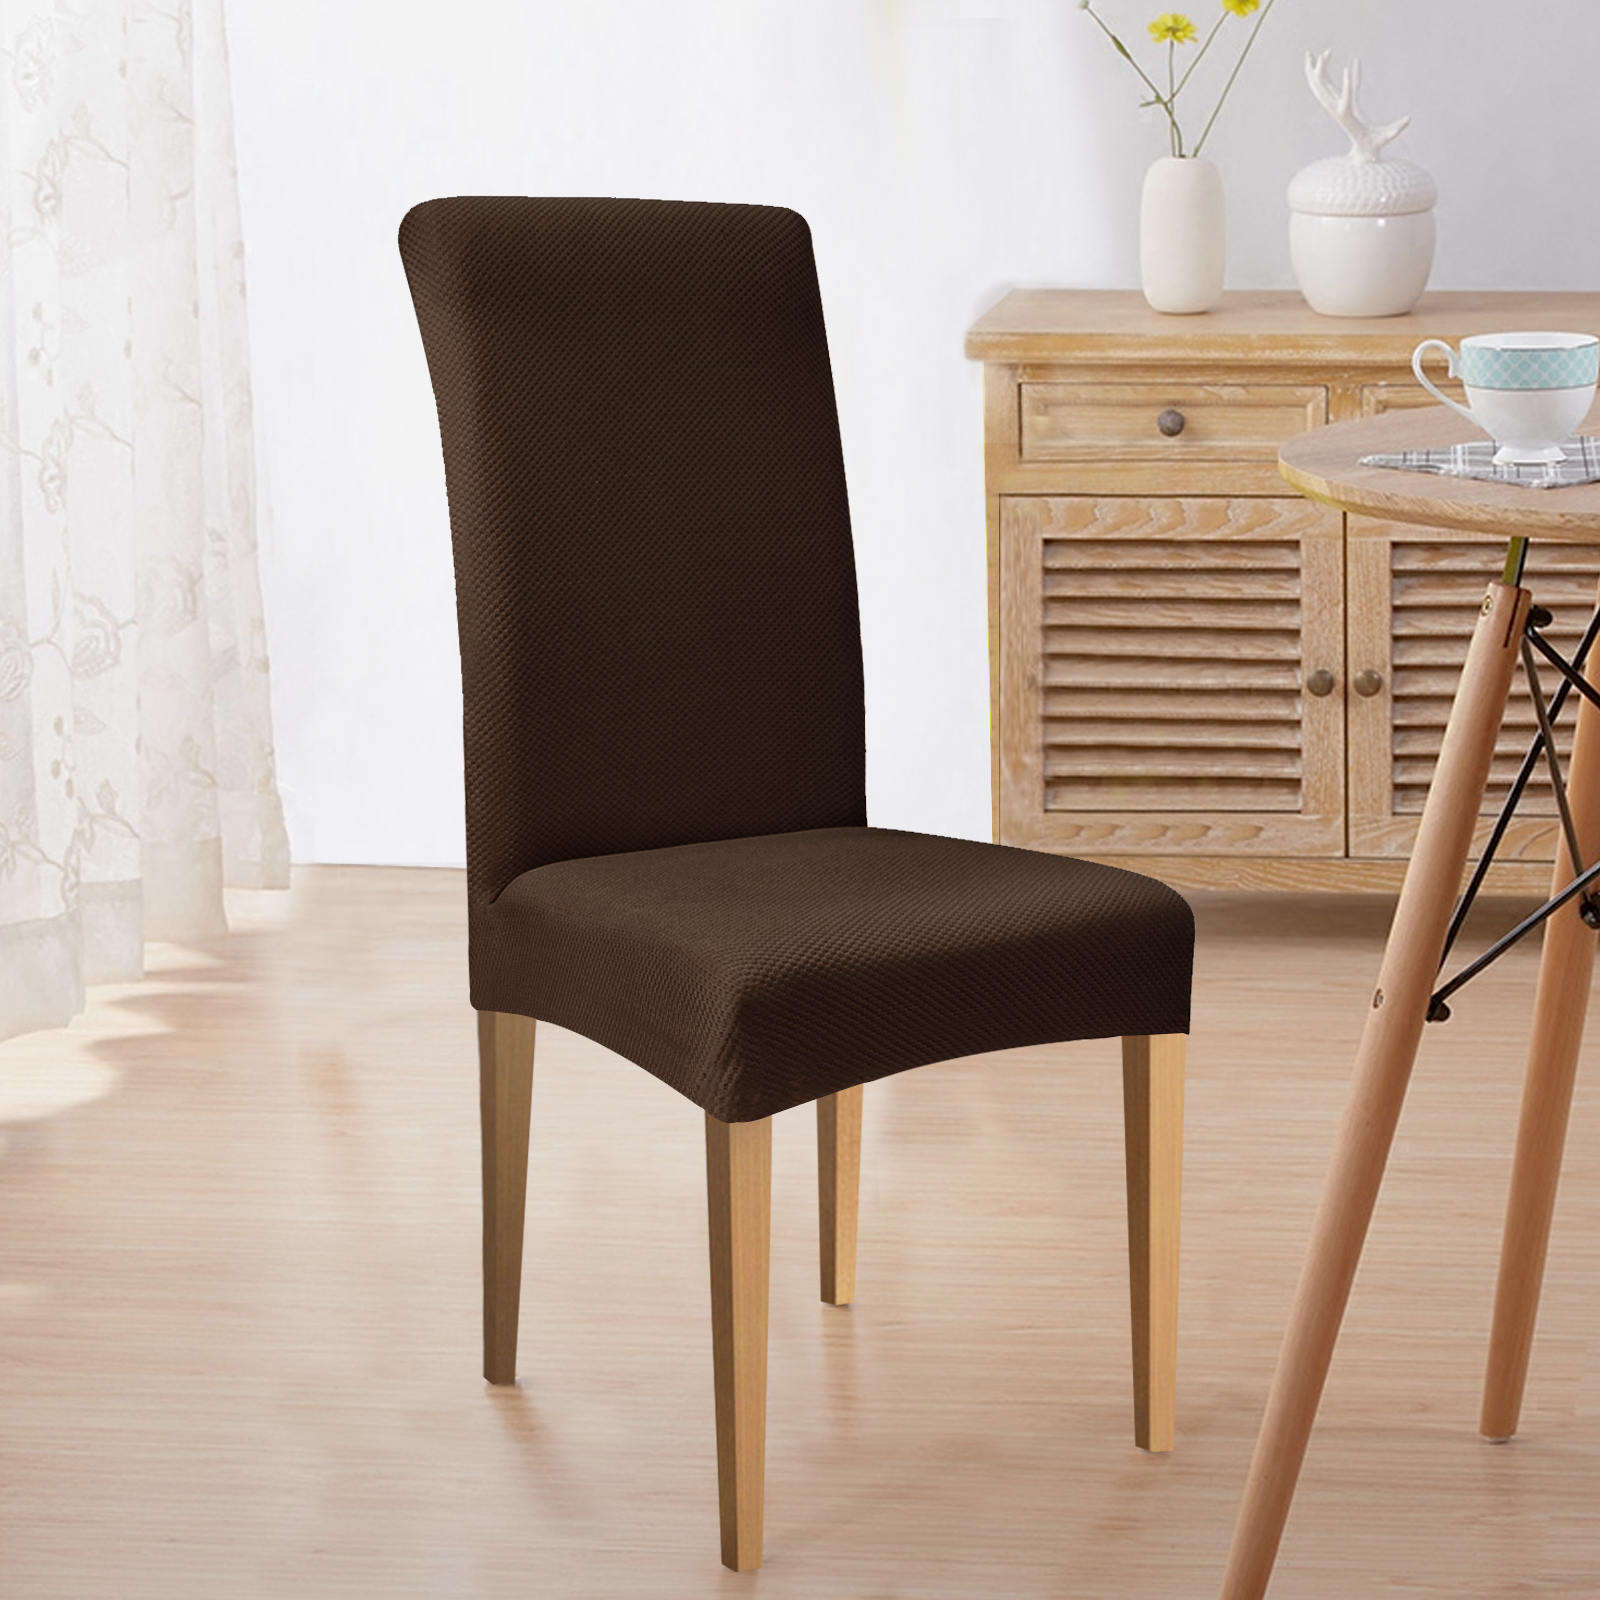 Subrtex Square Knit Stretch Dining Room Chair Covers 0